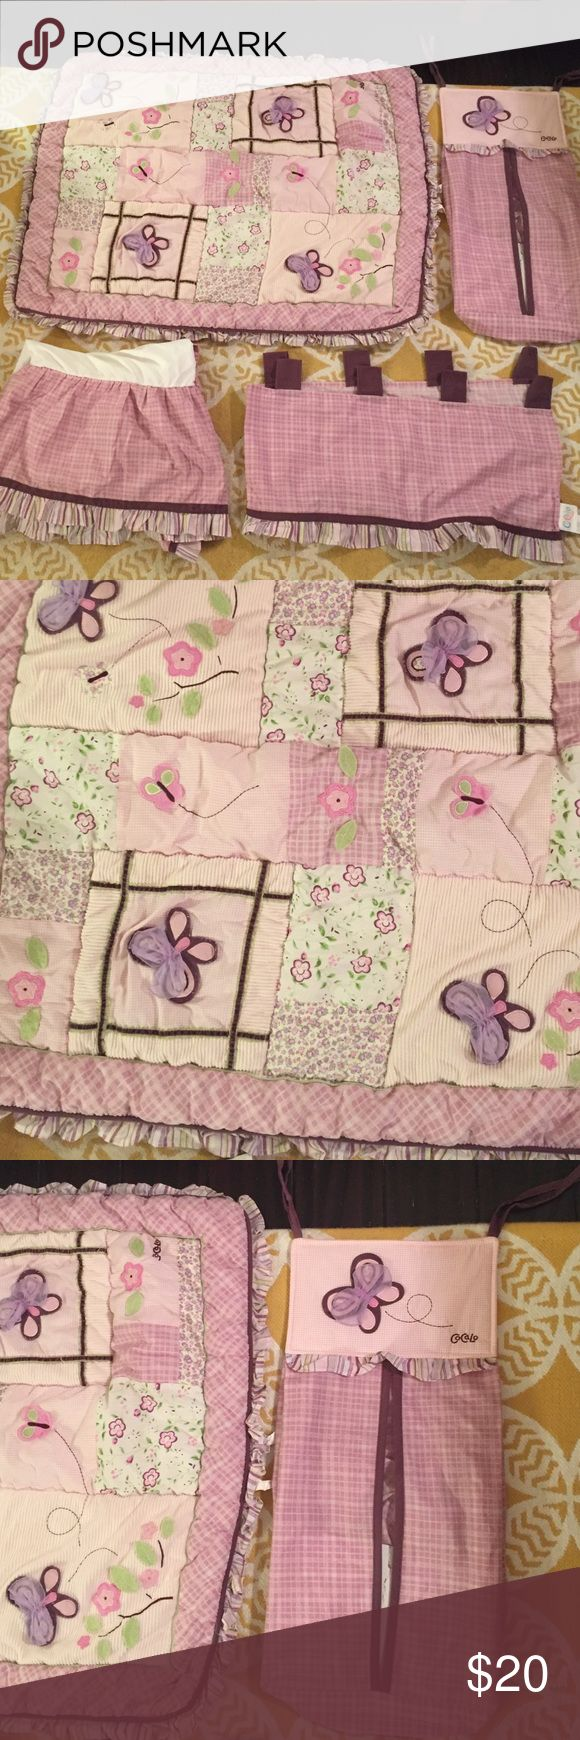 4 piece baby girl crib set! Gently used baby girl crib/room set. Pink and purple. Has plaid, patchwork design with flowers, butterflies, and ruffles. Comes with crib skirt, blanket, window covering, and hanging clothes bin. In good used condition. Other